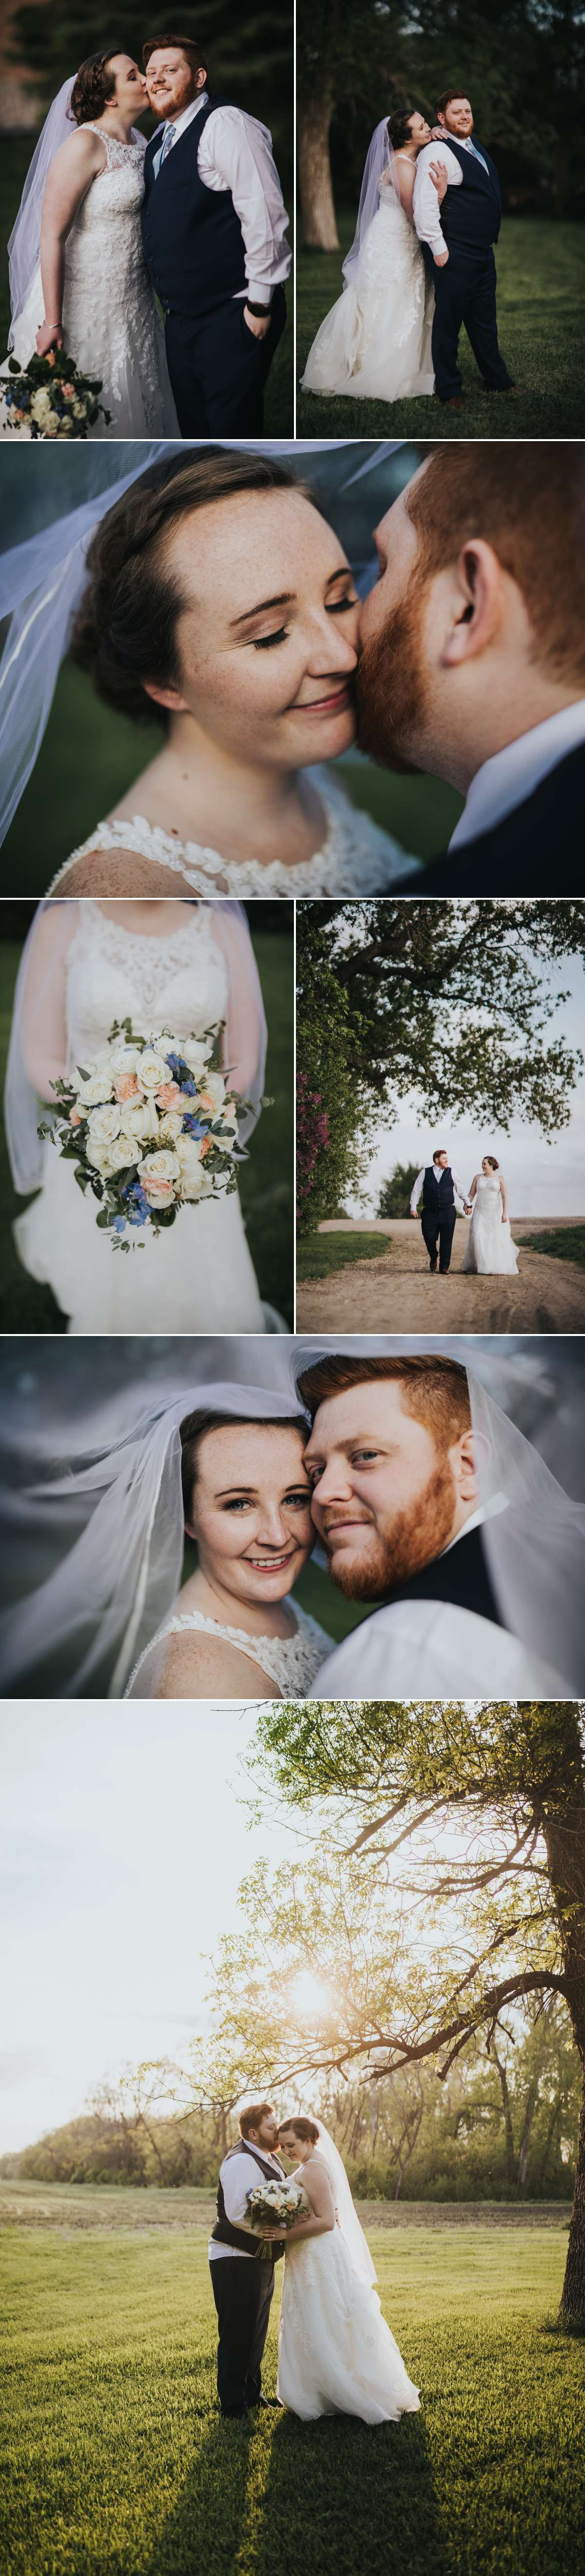 Sunset Bride and Groom couple portraits at Romantic Moon Event Center